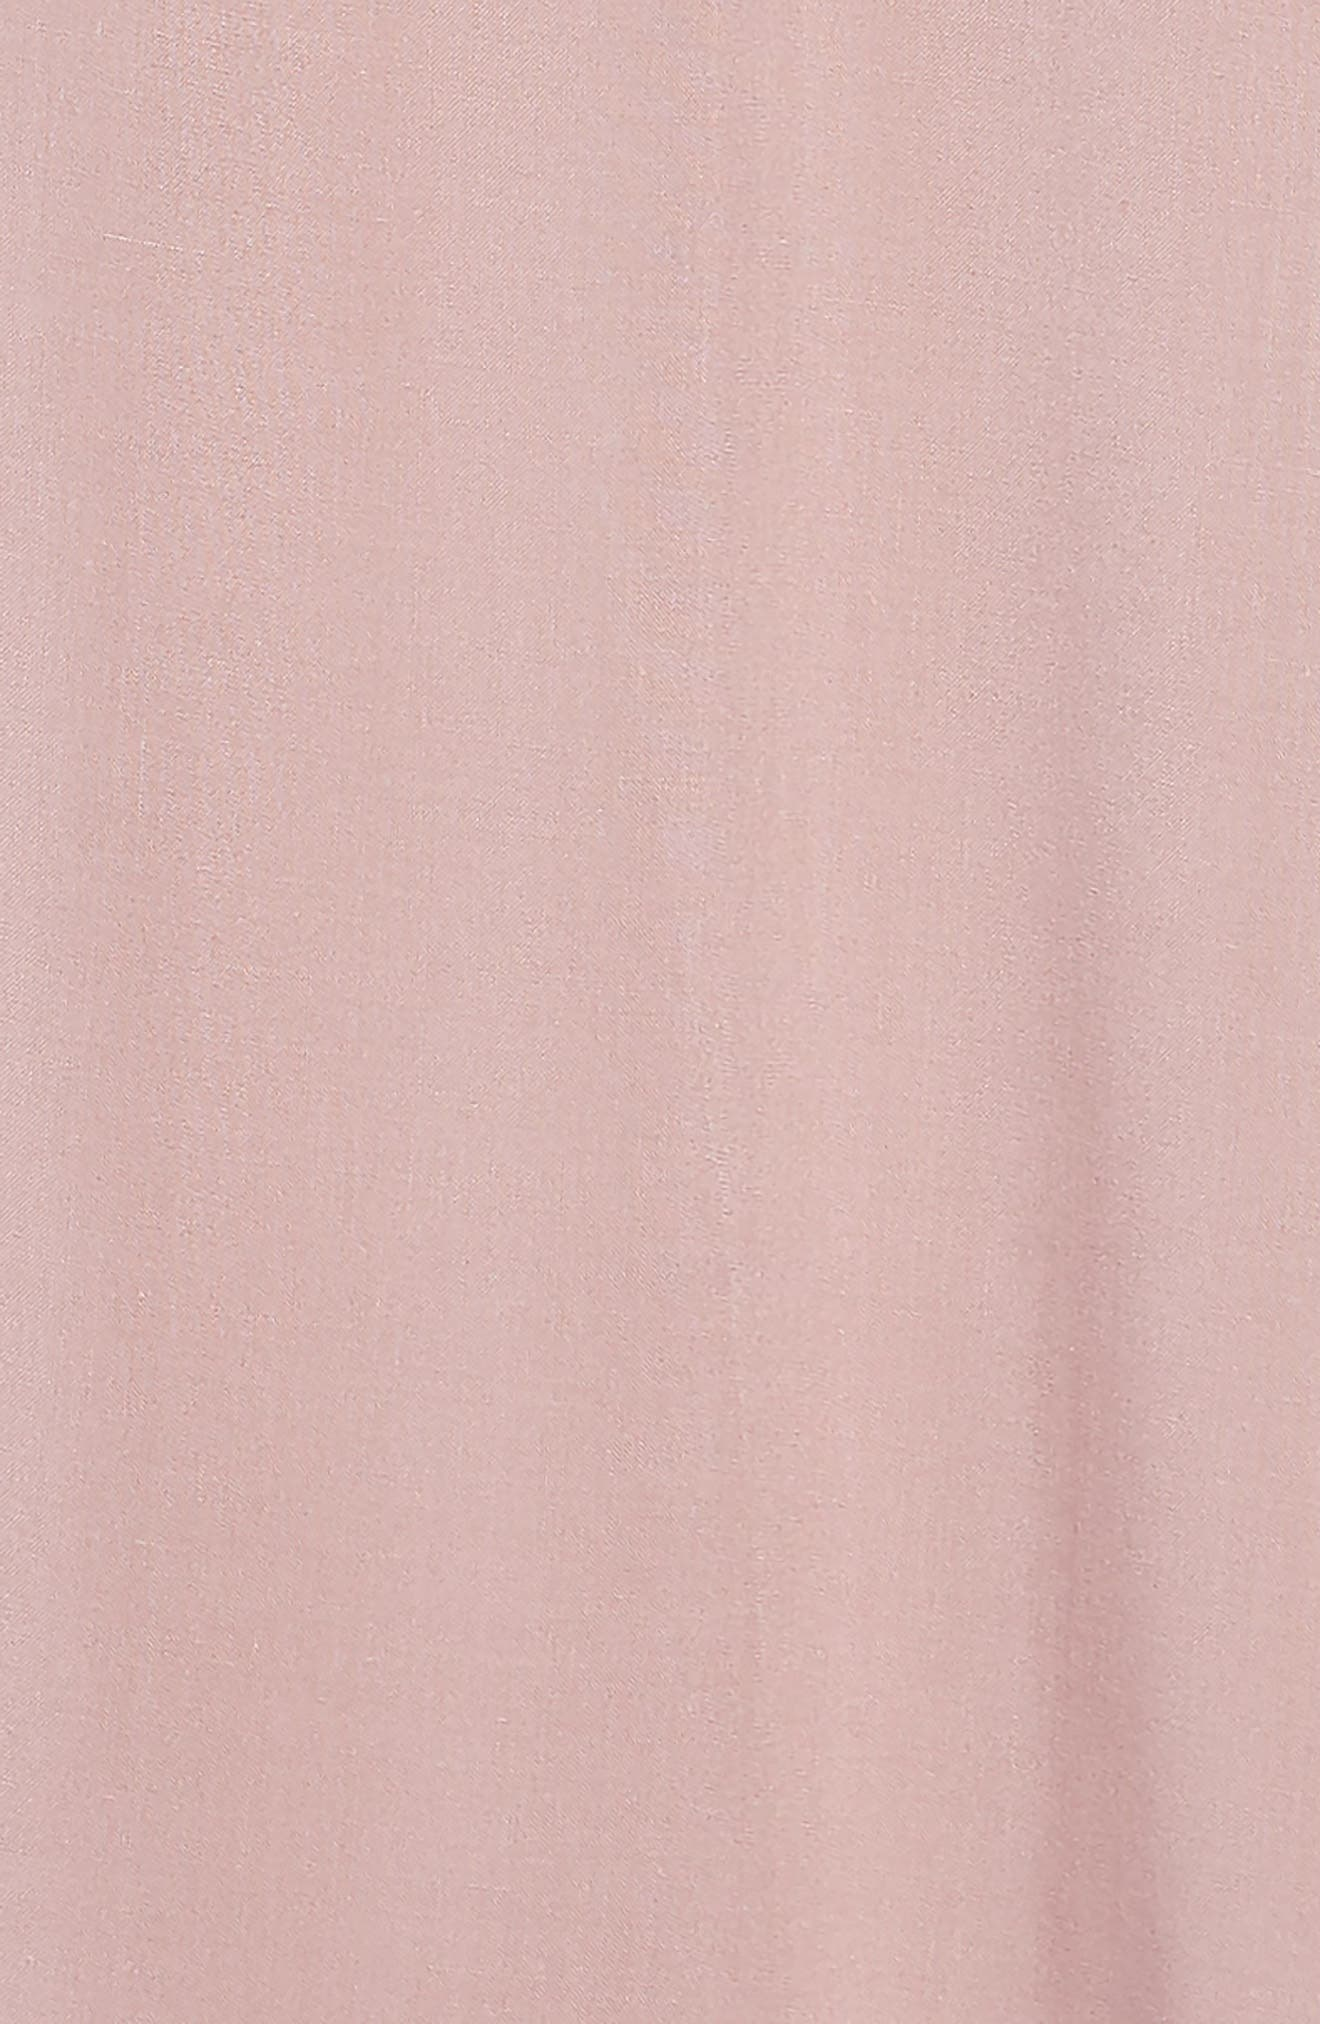 Serenade One-Shoulder Dress,                             Alternate thumbnail 3, color,                             DEAUVILLE MAUVE